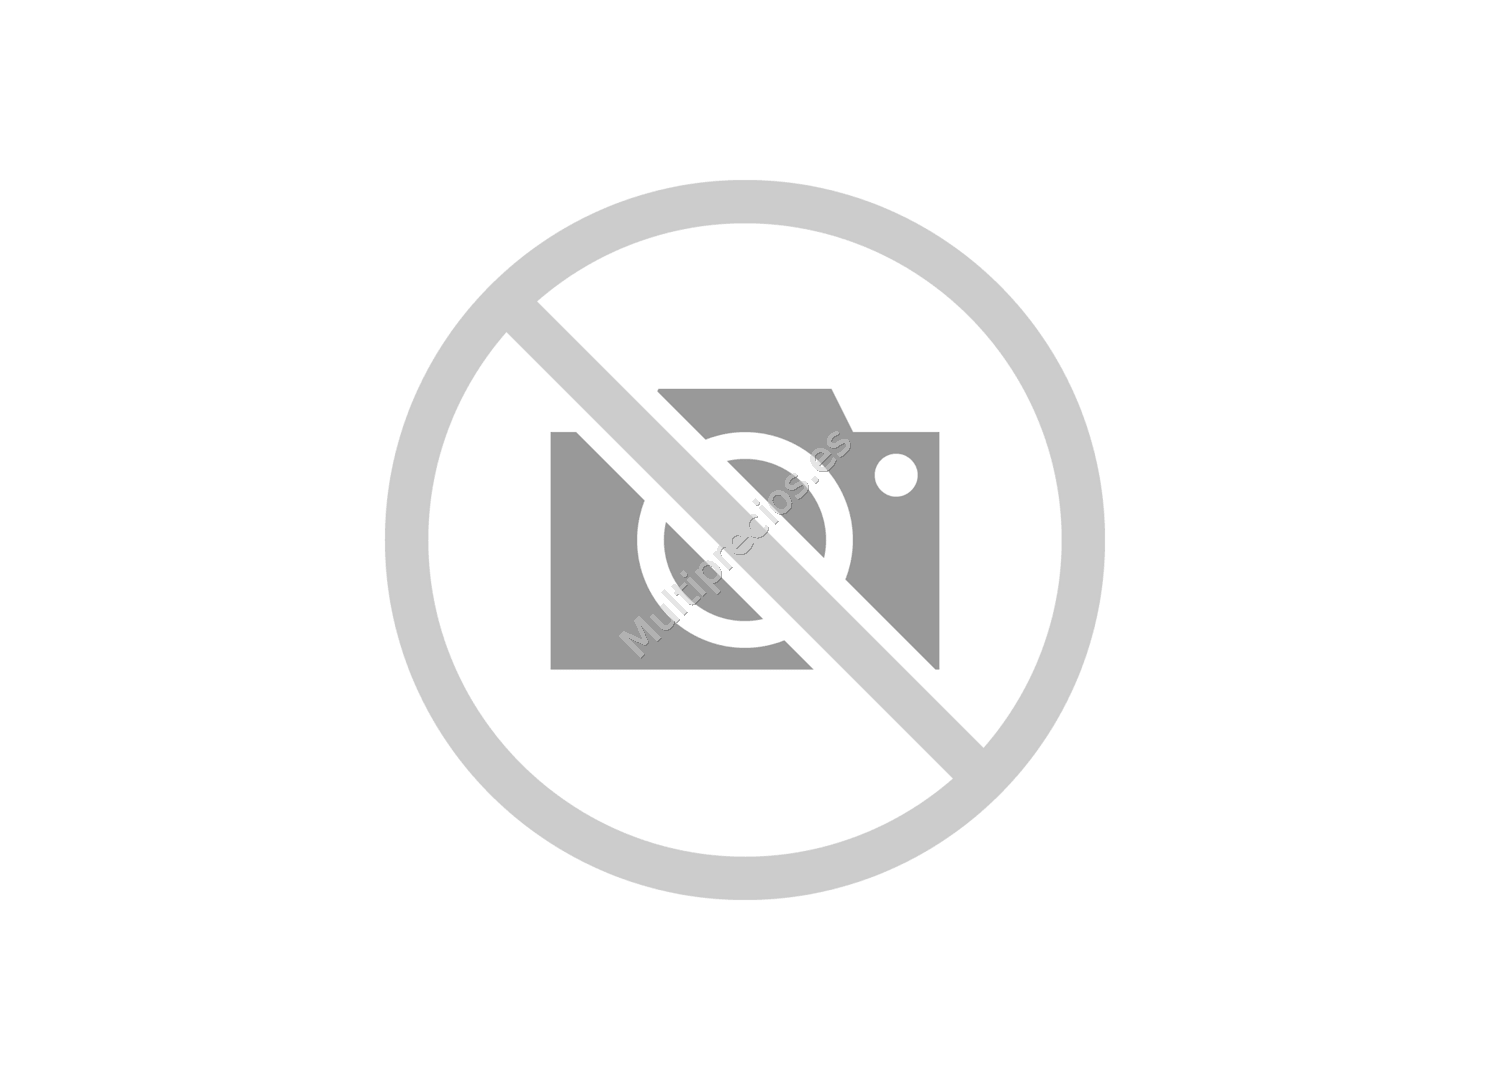 PISCINA HINCH.3 A.122x20